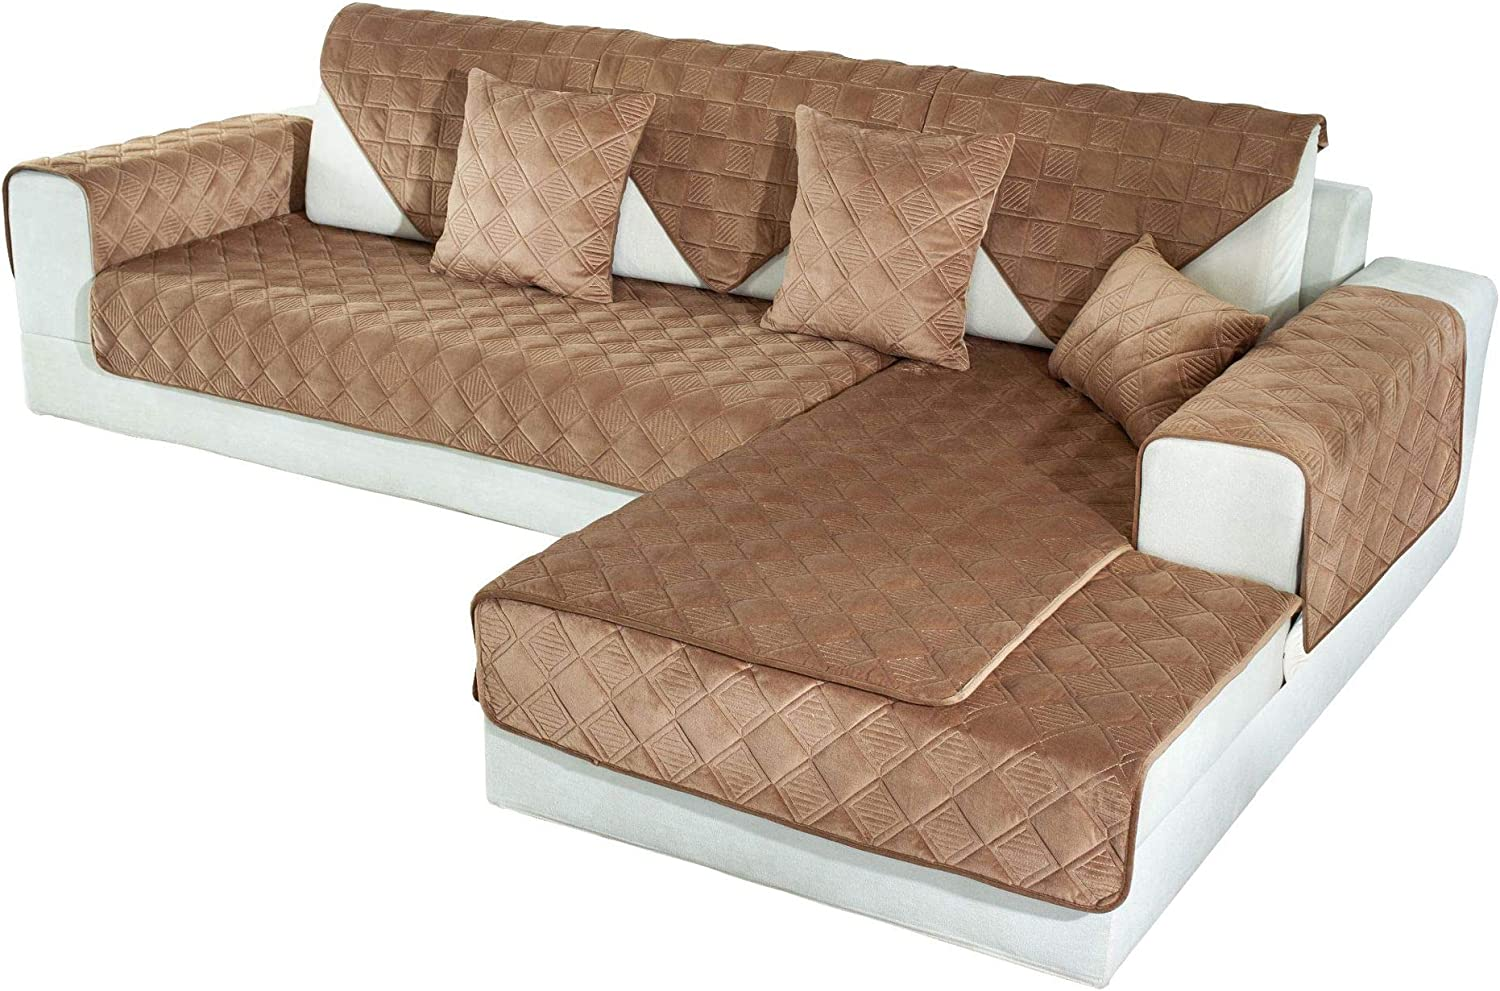 OstepDecor Couch Cover, Sofa Cover, Quilted Sectional Couch Covers, Velvet Sofa Slipcover for Dogs Cats Pet Love Seat Recliner Leather L Shaped, Armrest Backrest Cover, Brown 2pcs 36 x 36 Inches